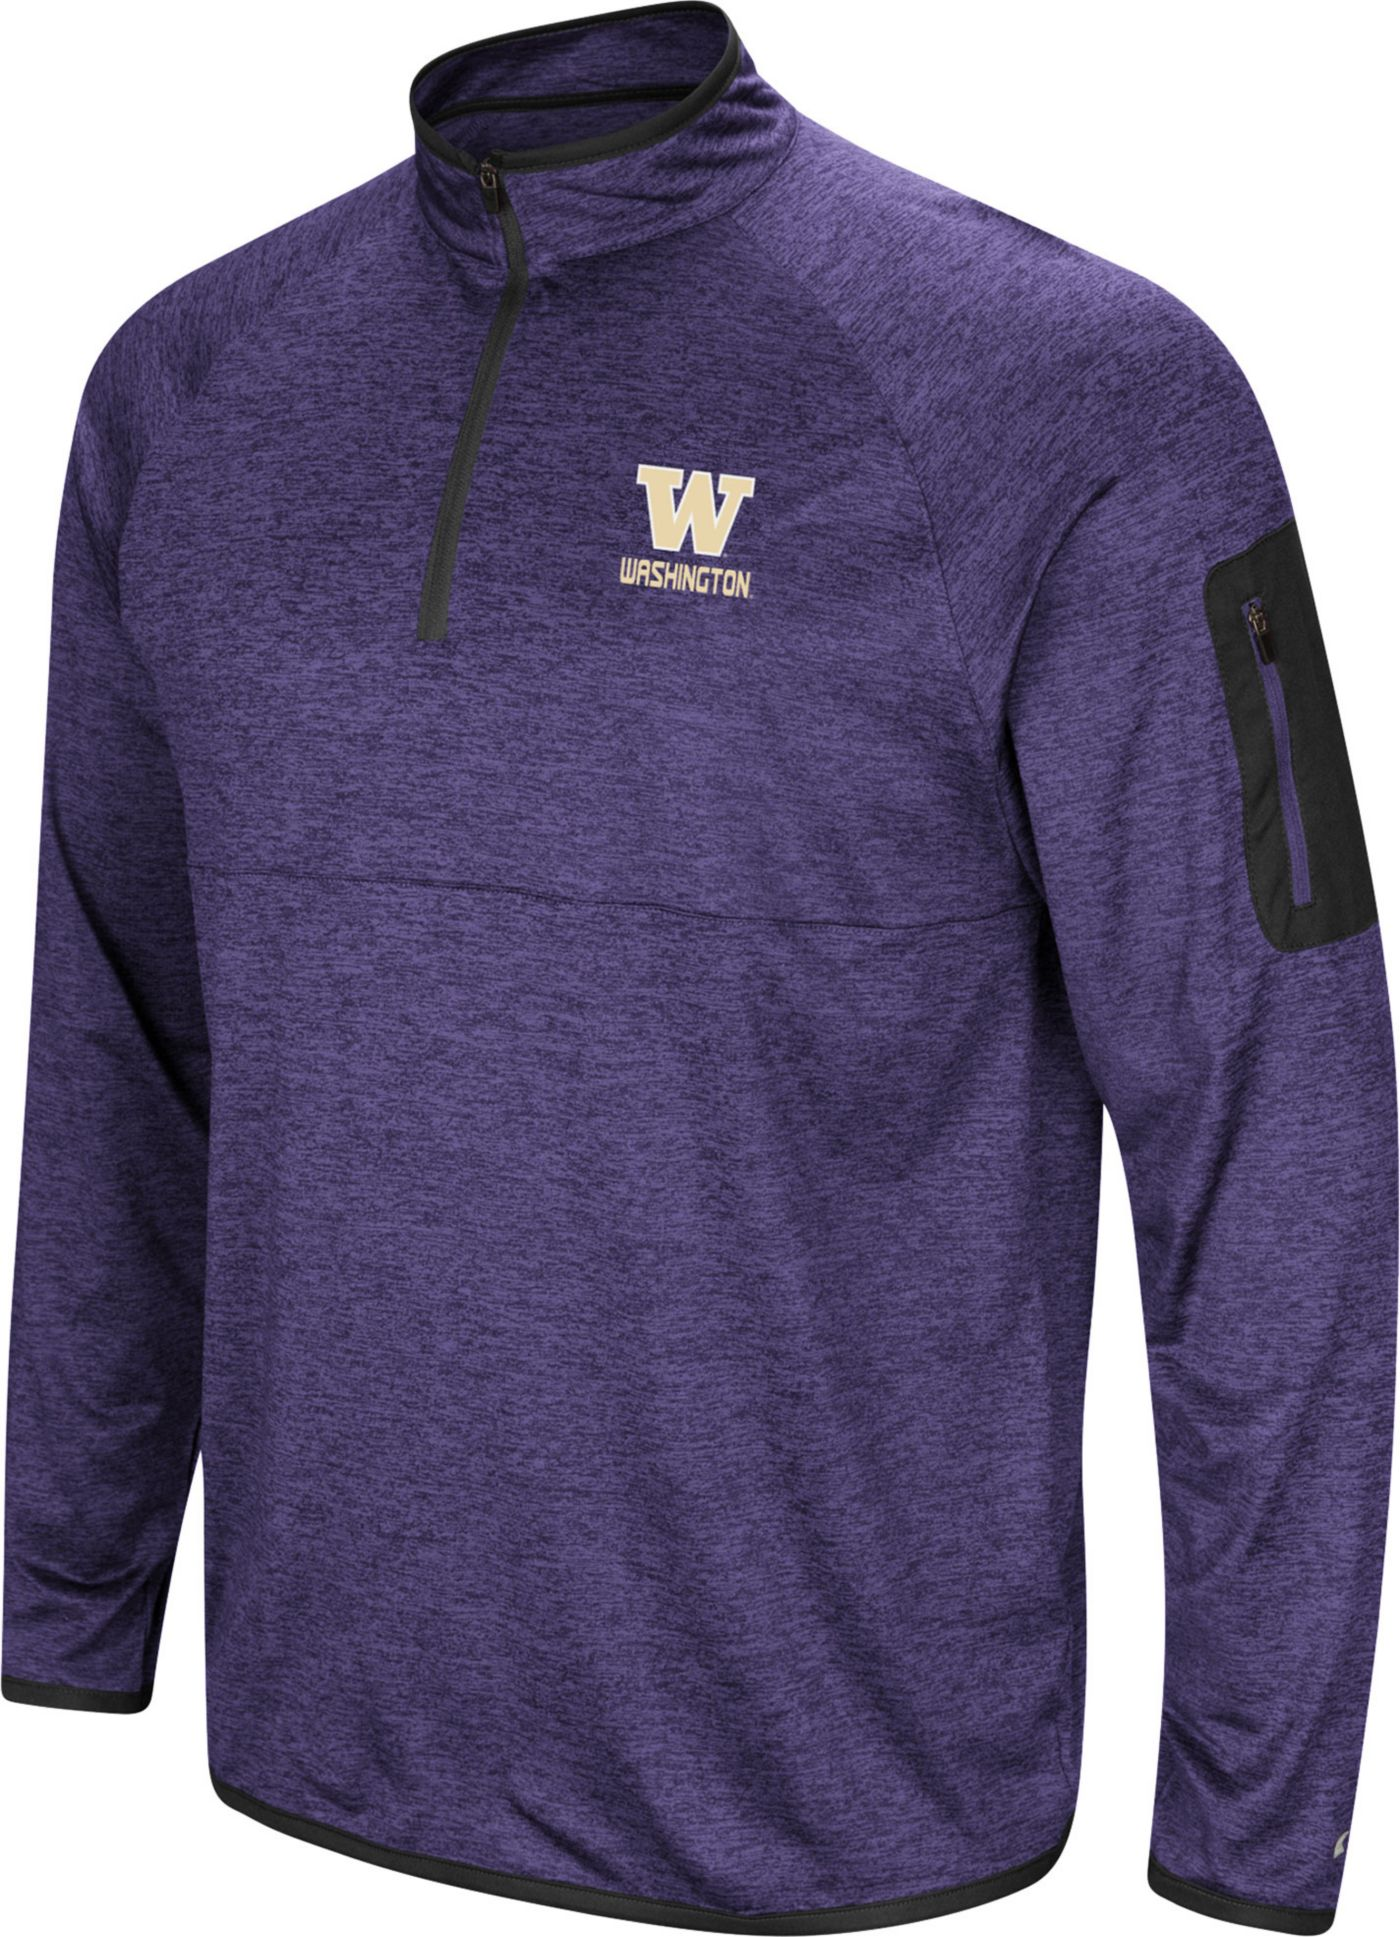 Colosseum Men's Washington Huskies Purple Indus River Quarter-Zip Shirt